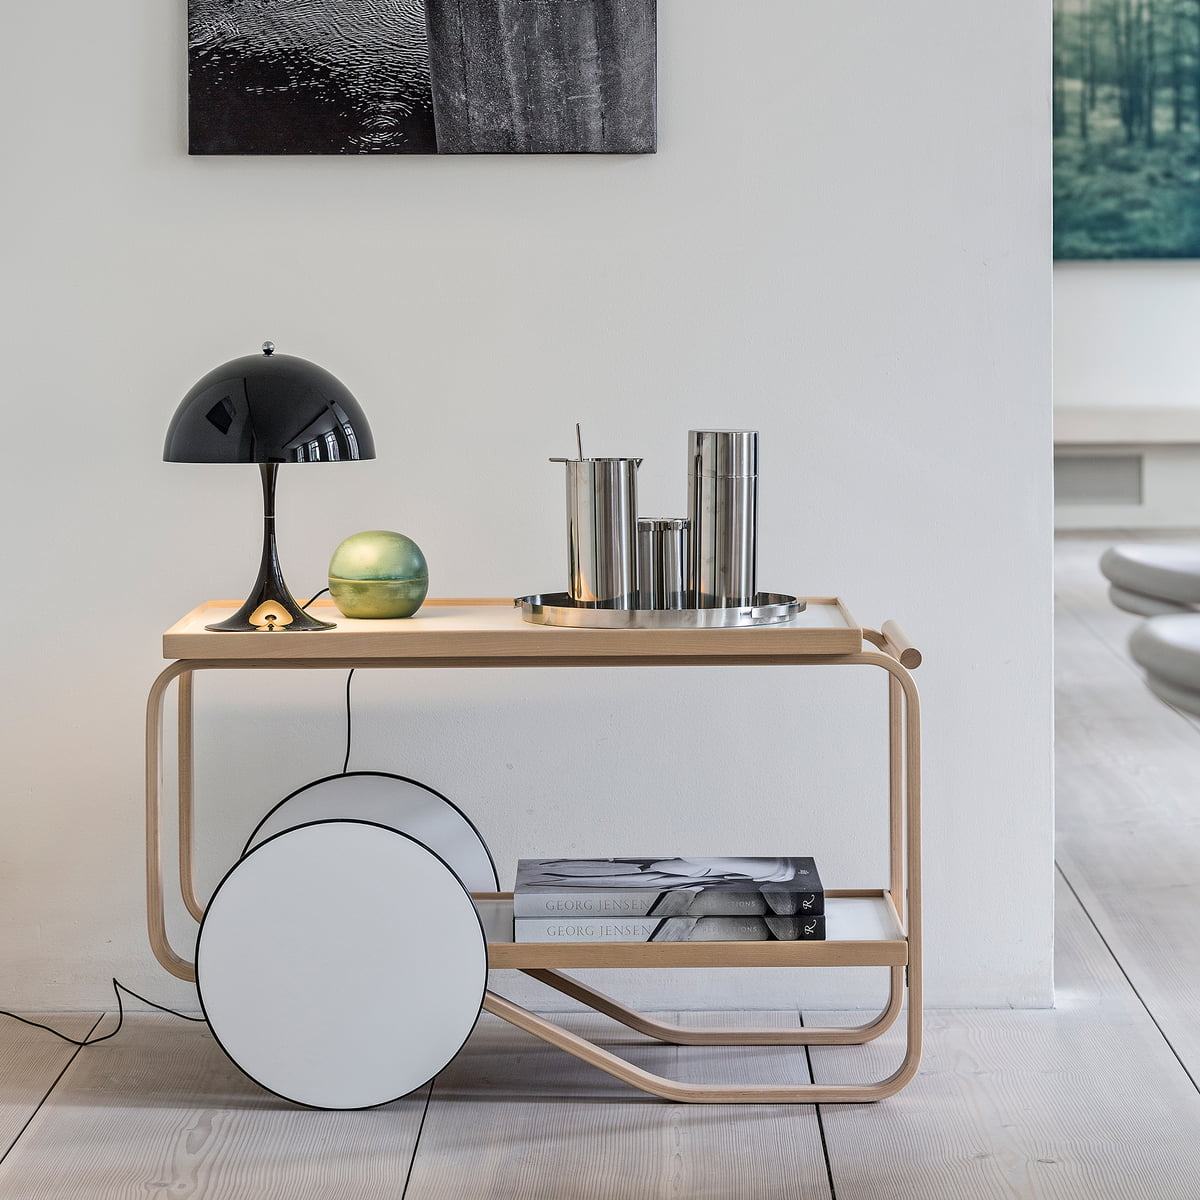 Panthella mini table lamp by louis poulsen louis poulsen panthella mini table lamp artek tea trolley aloadofball Image collections